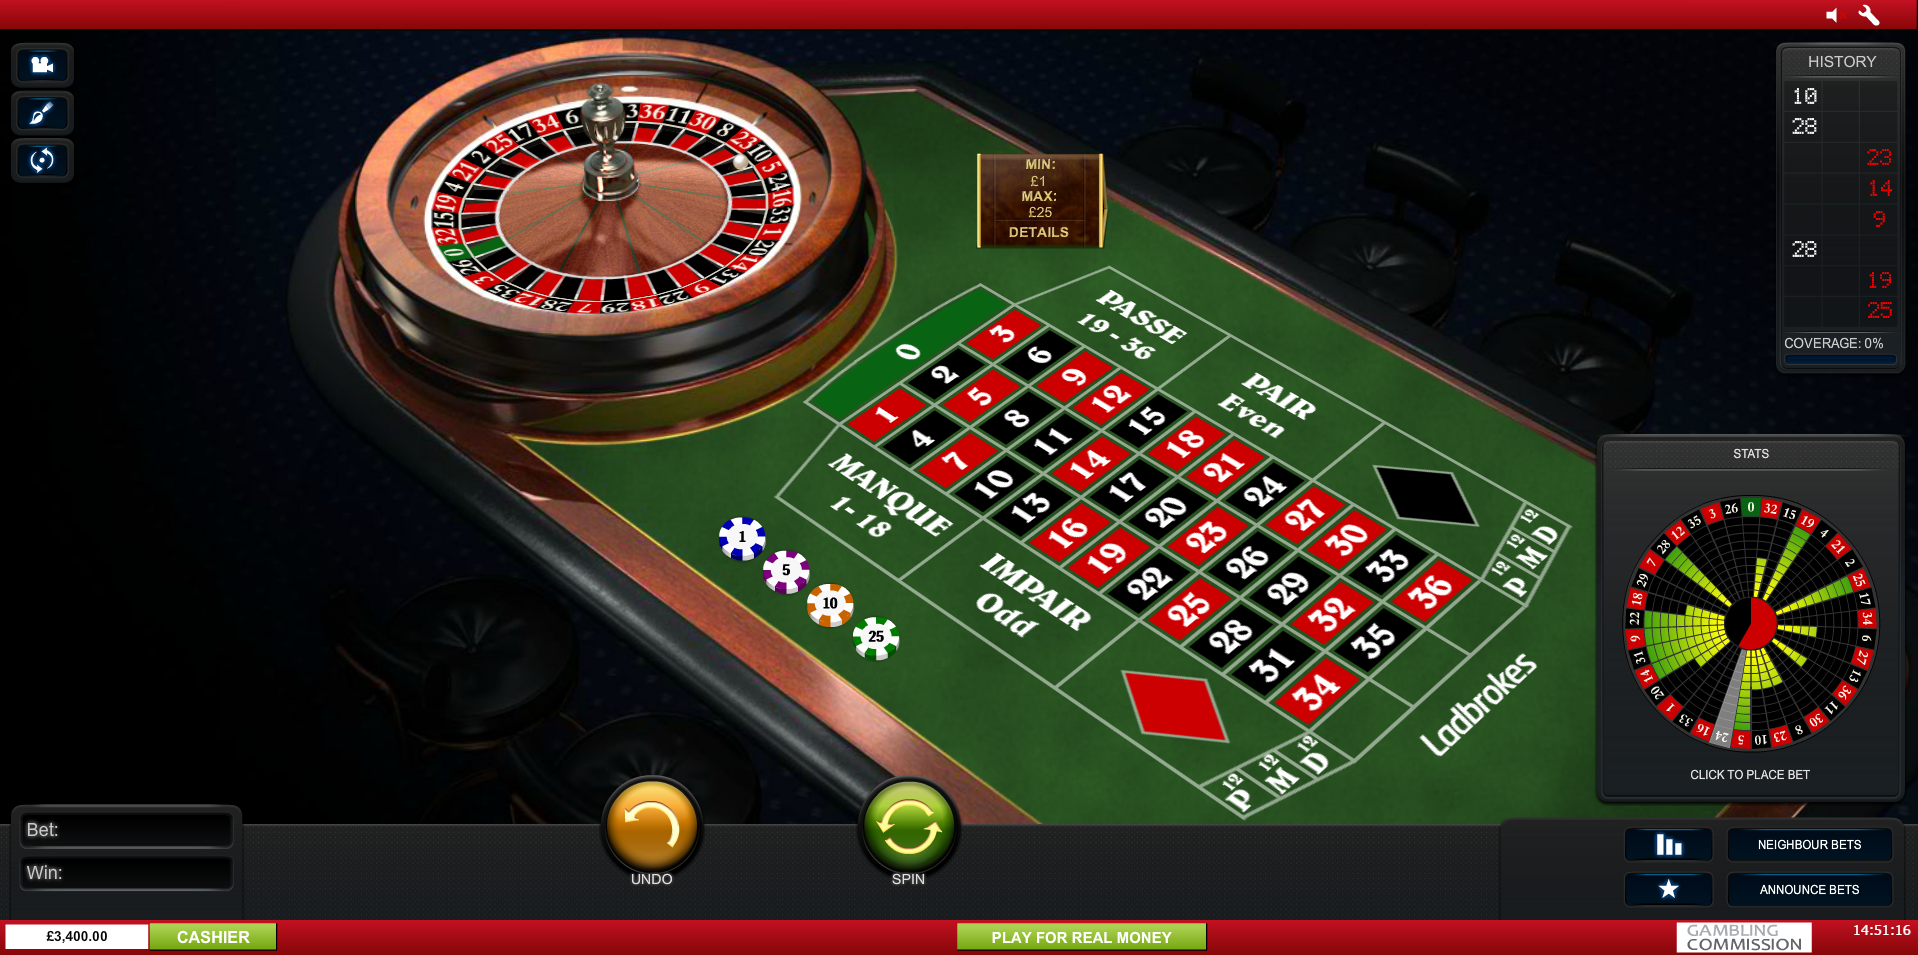 History of roulette winners